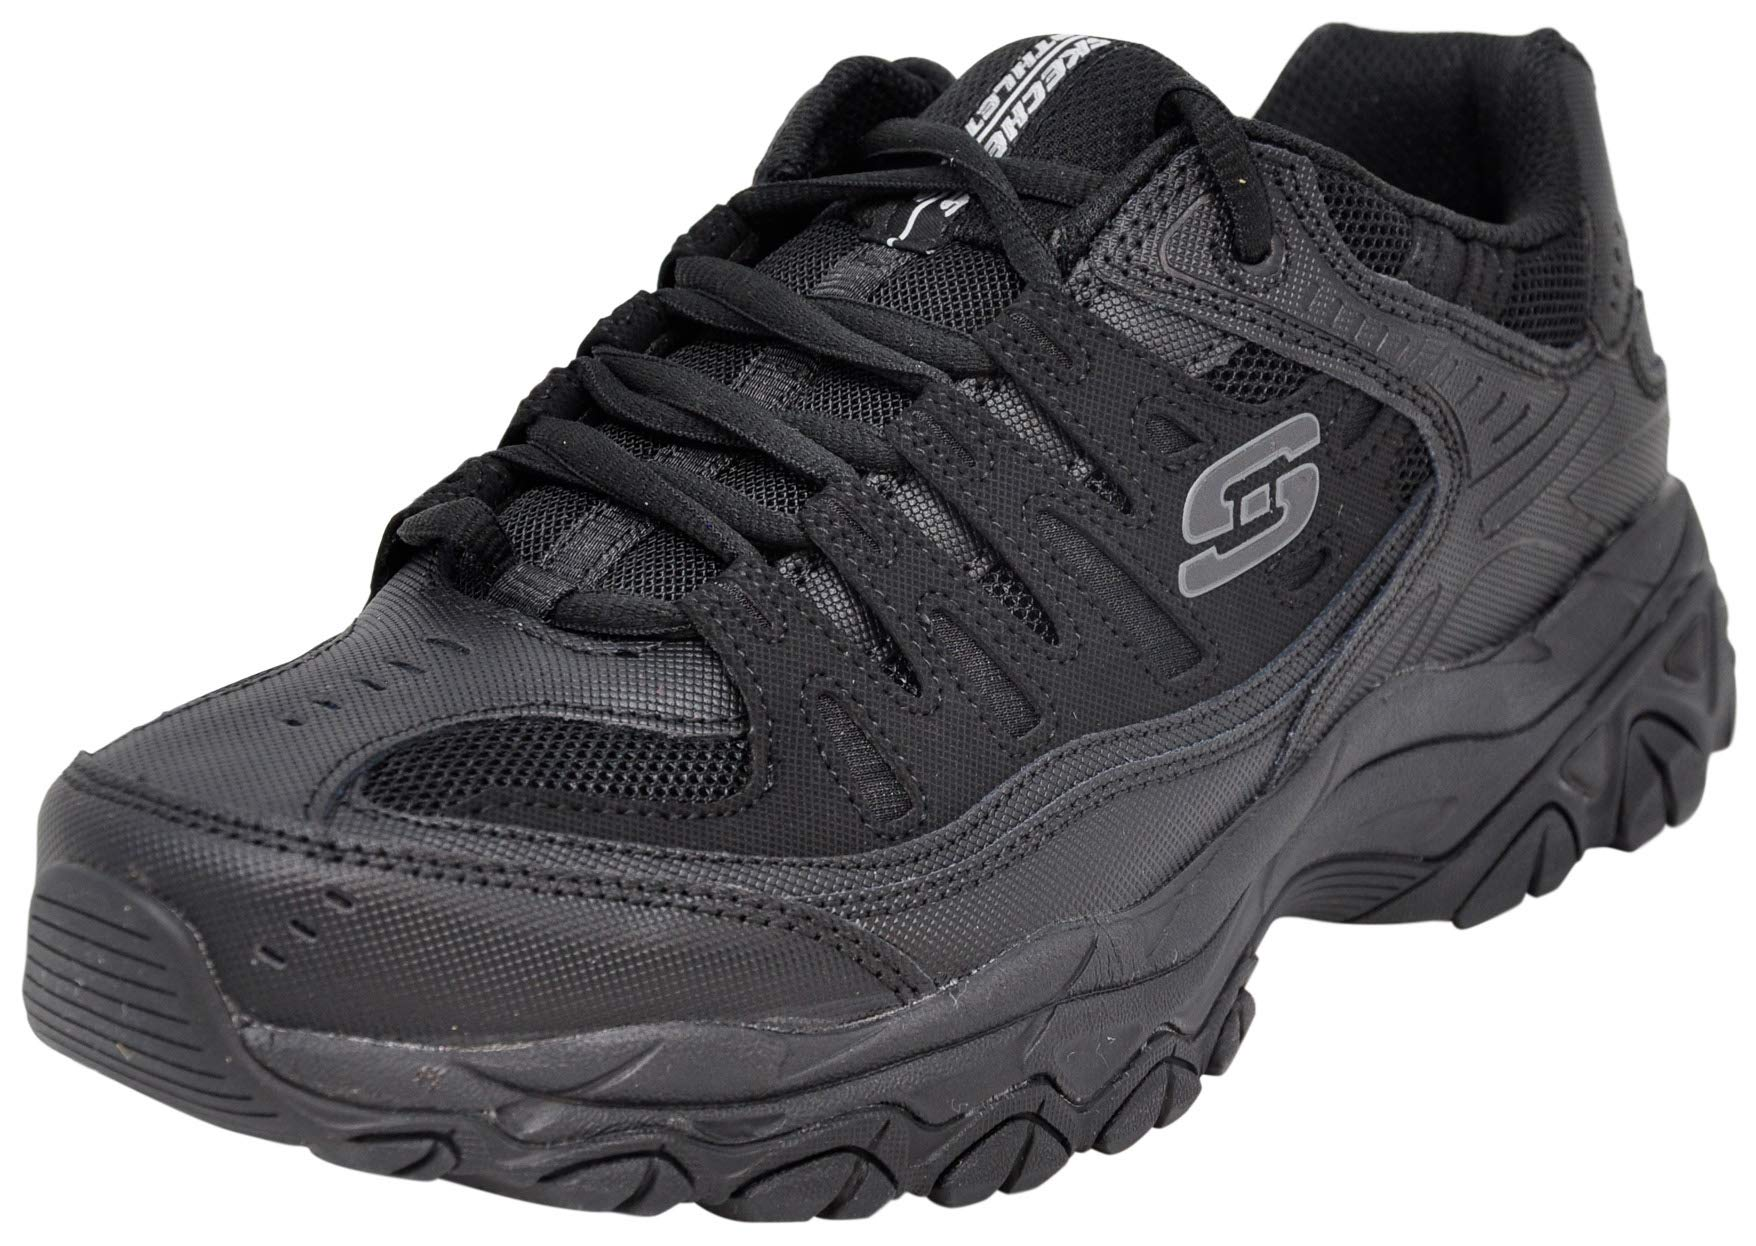 Skechers Men Afterburn Lace-Up Sneaker, Black/Black, 12 M US